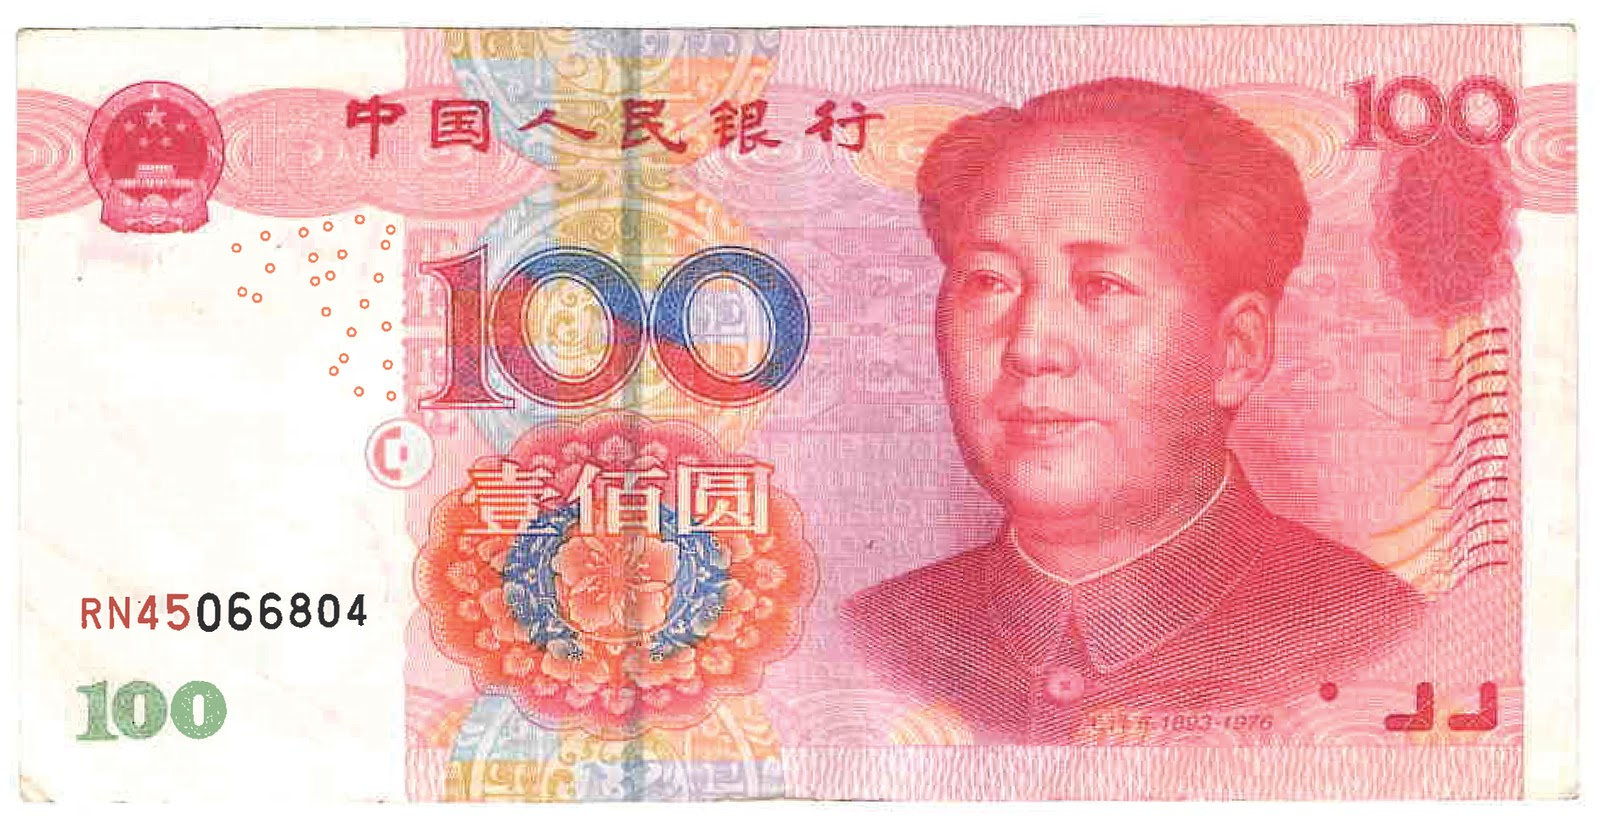 The Financial Times Said Inclusion Of Chinese Yuan May Be Like Many Reforms Significant In Hindsight But Harder To Get Excited